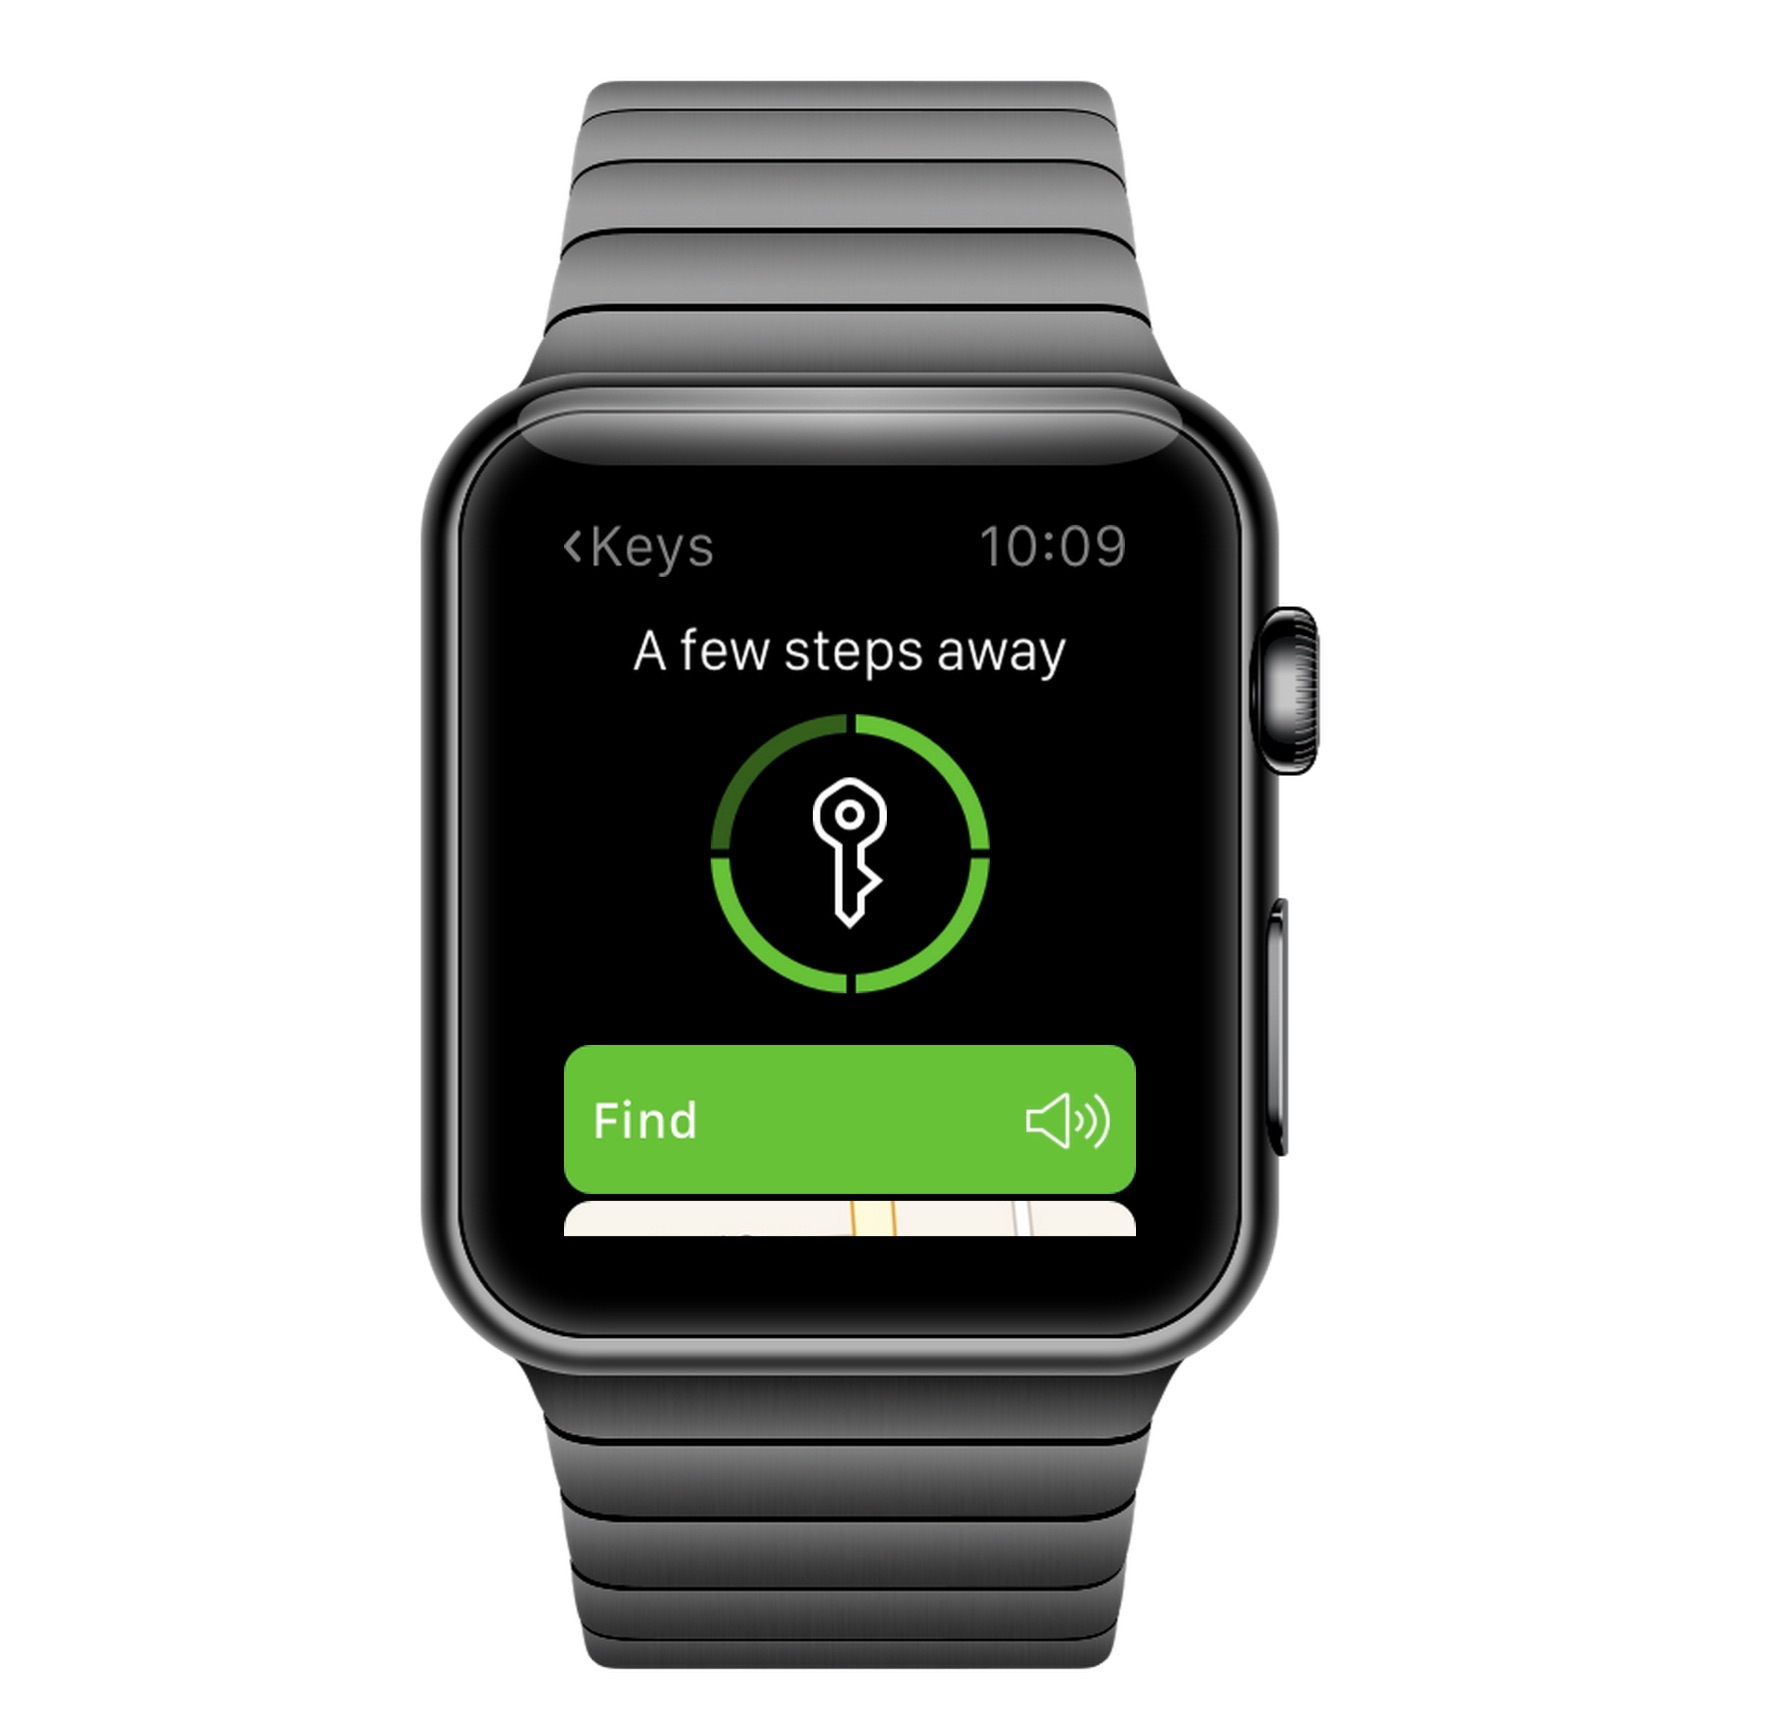 Save time finding your possessions with Tile's Apple Watch app